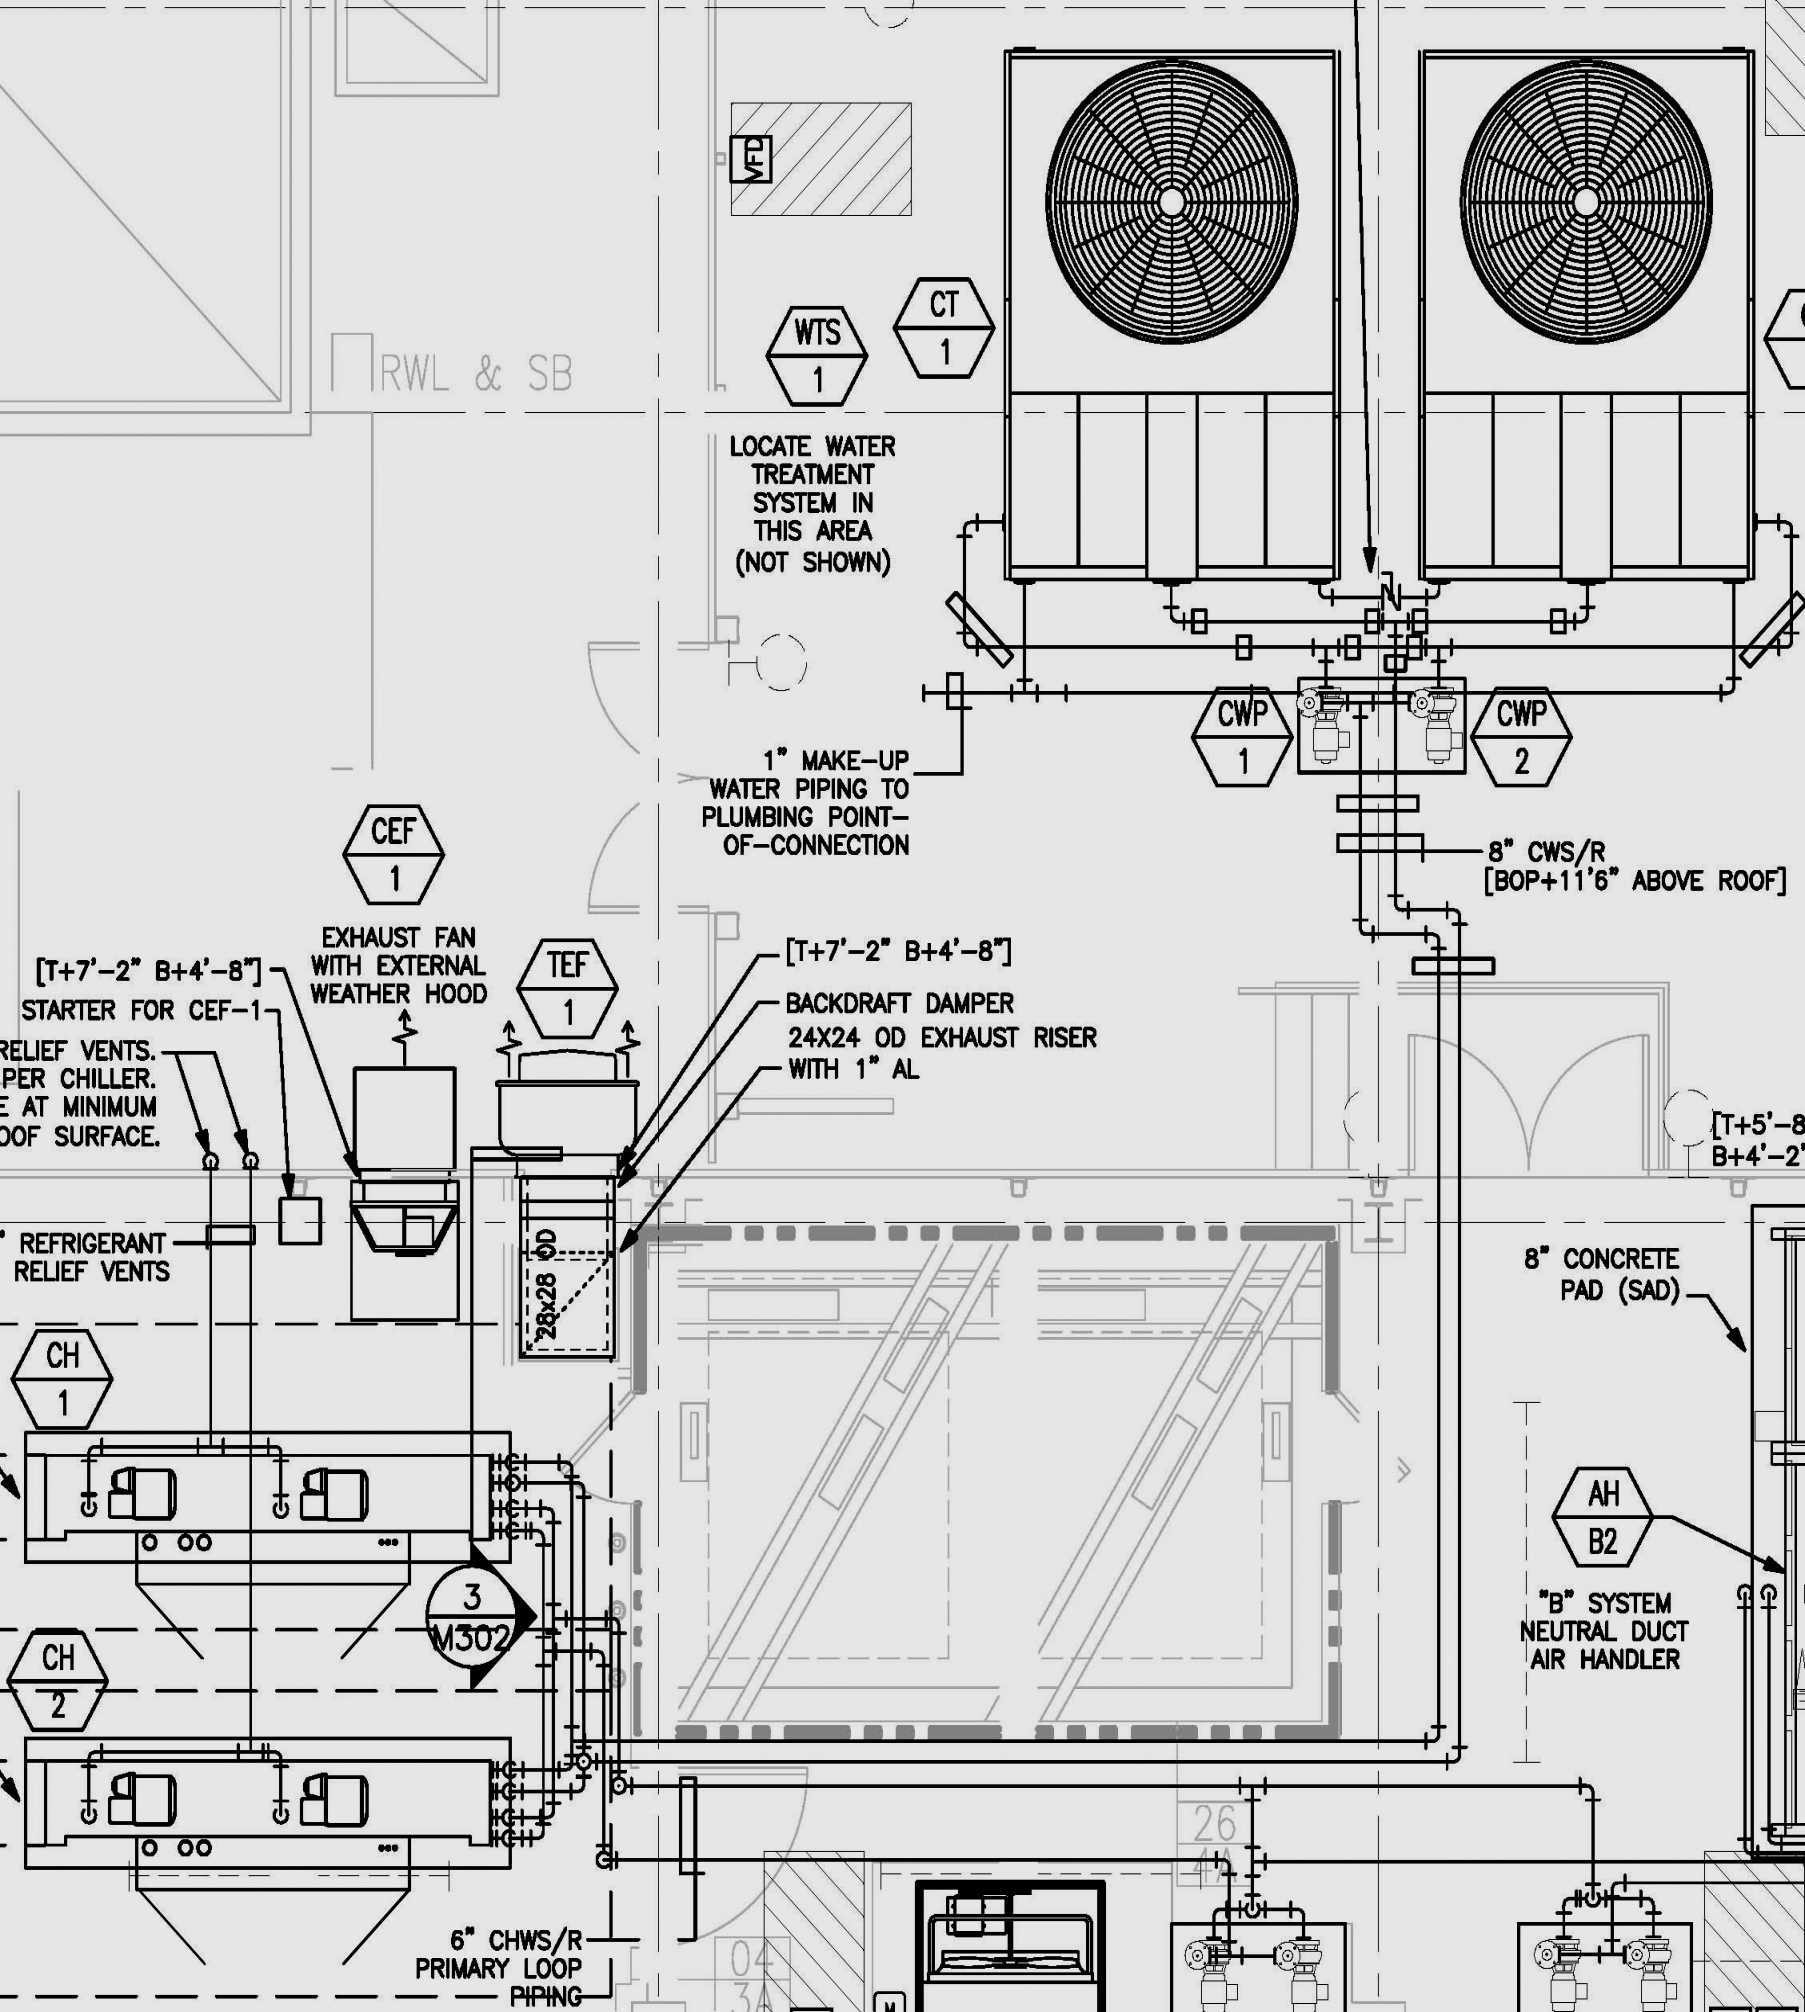 Paragon Timer Wiring Diagram 8145 20 Electric Defrost Diagram Of Paragon Timer Wiring Diagram